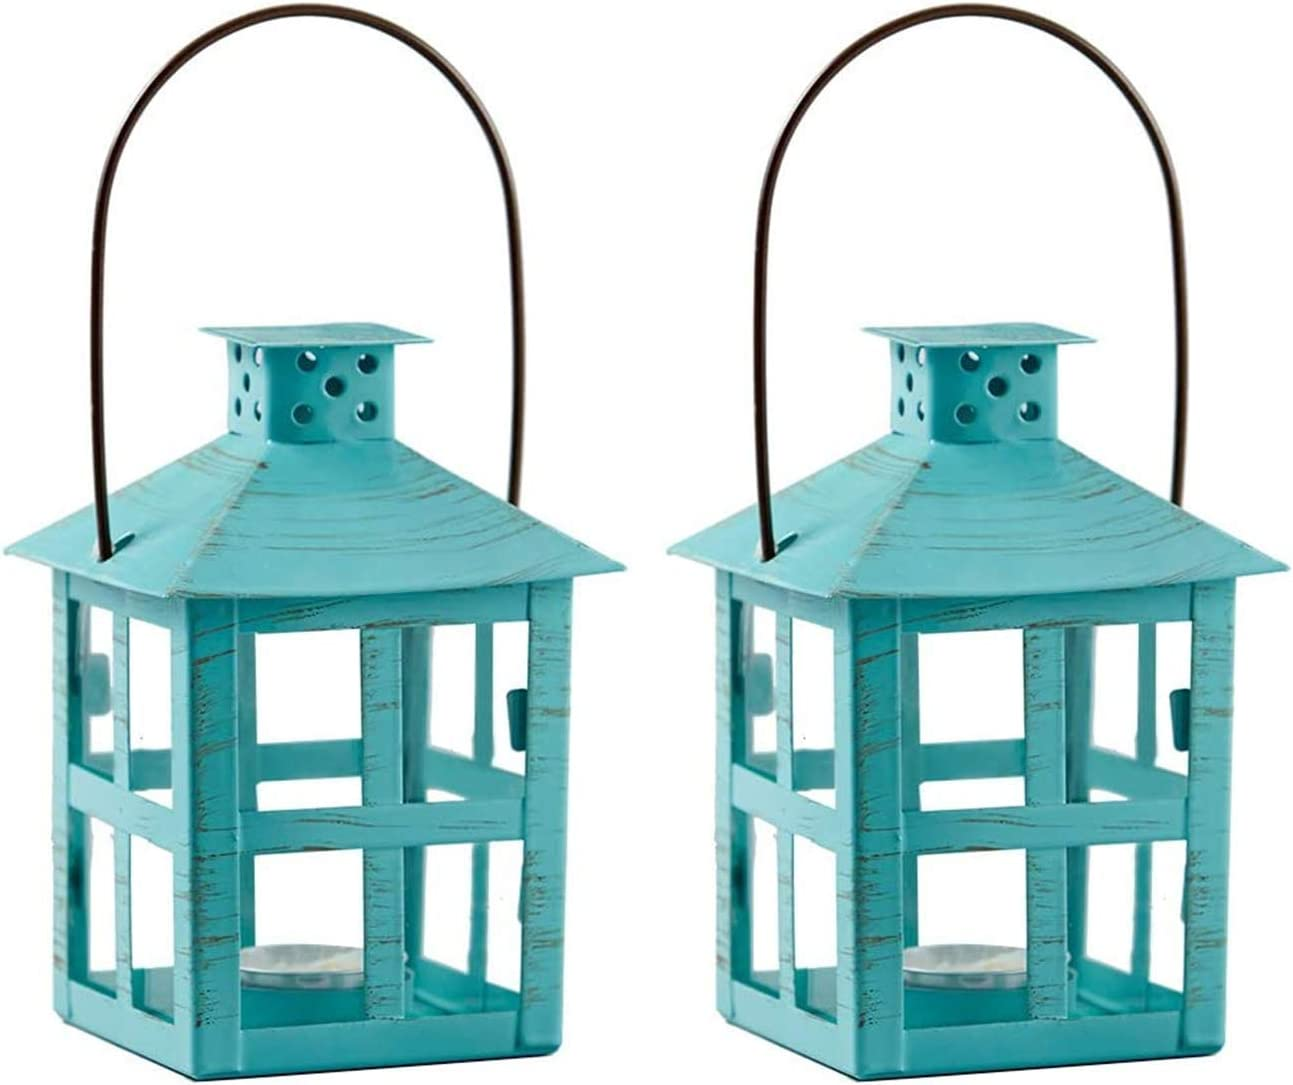 Kate Aspen Decorative Lanterns - Set of 2 - Vintage Metal Lantern Candle Holders for Wedding, Home Decor and Party - 7.5